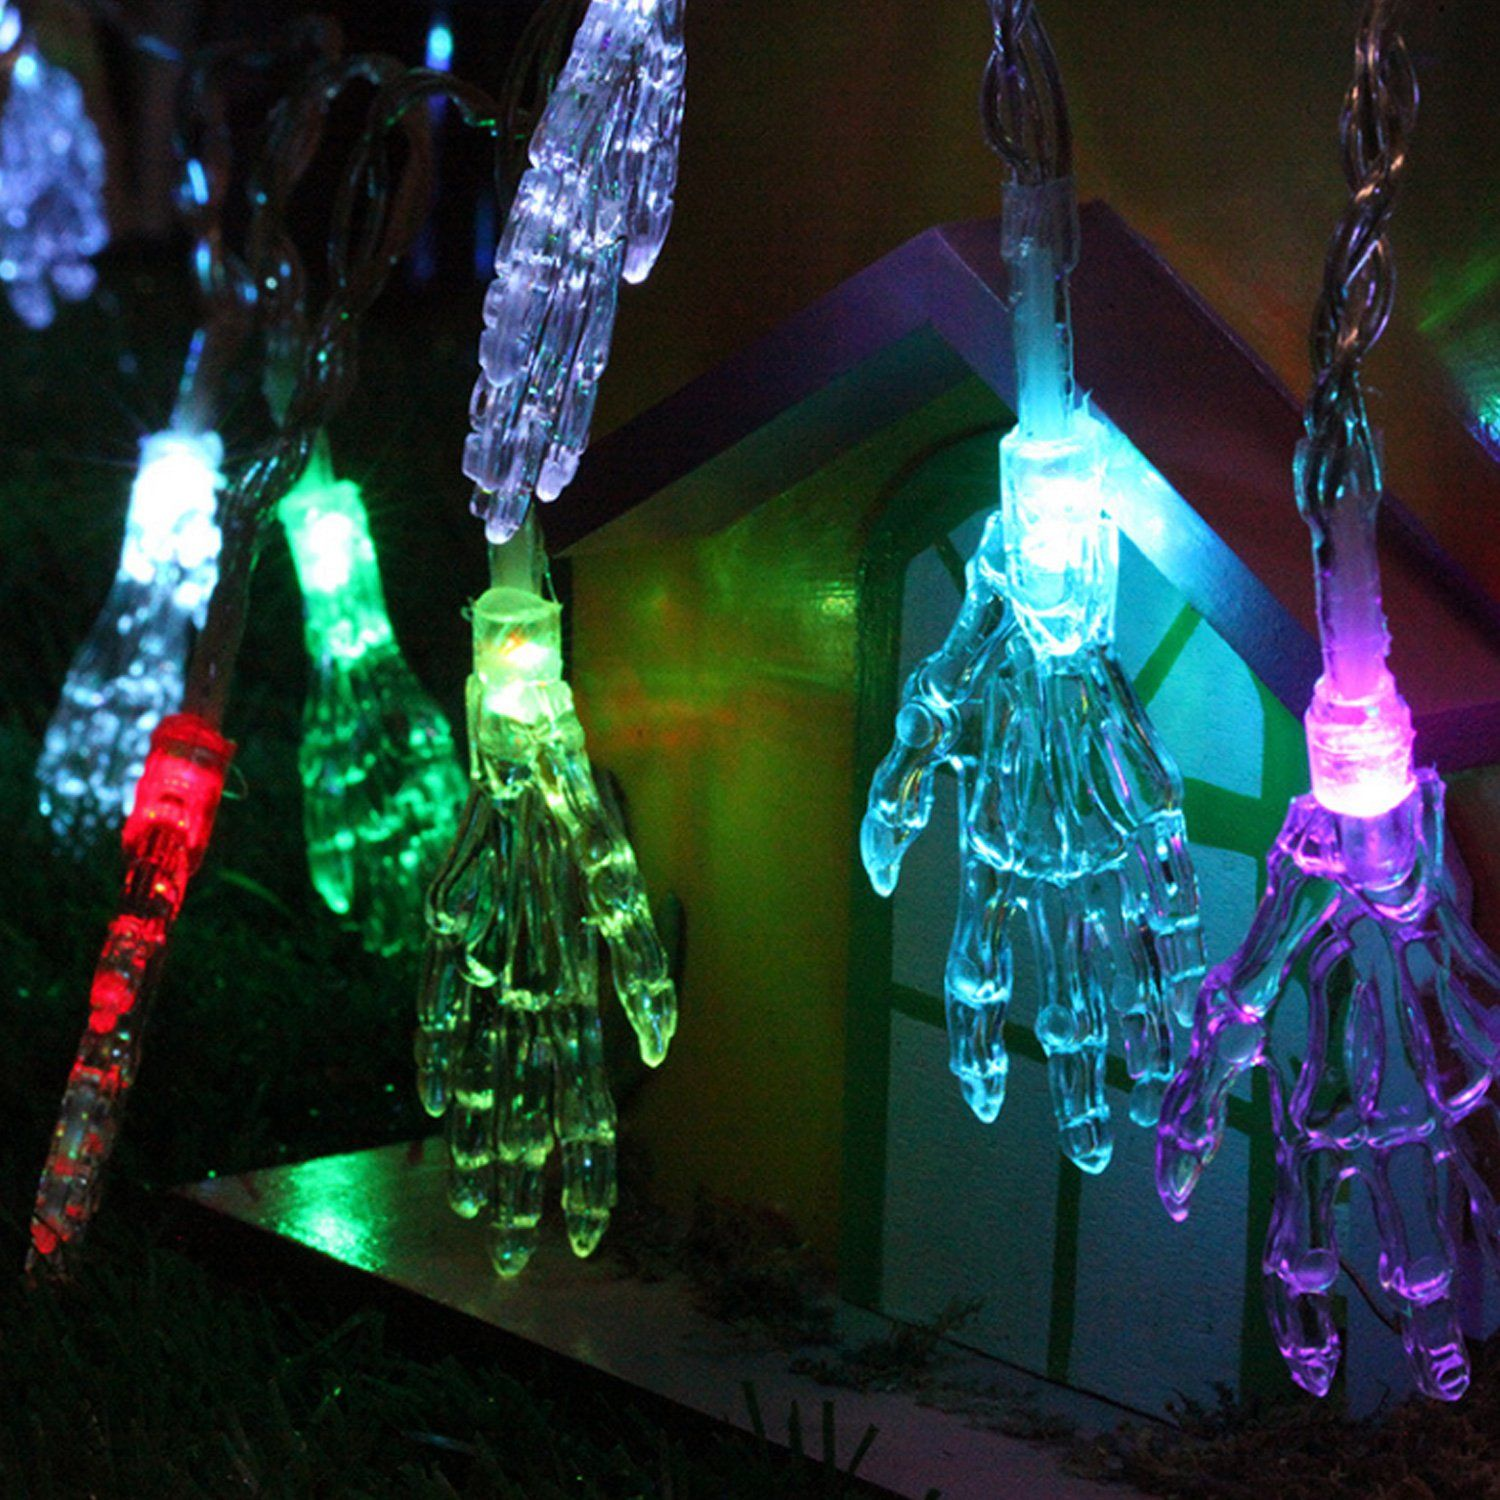 lawn fairy led decorative holiday home lights patio qedertek string solar christmas decorations dp for lighting blossom garden outdoor and flower party decor